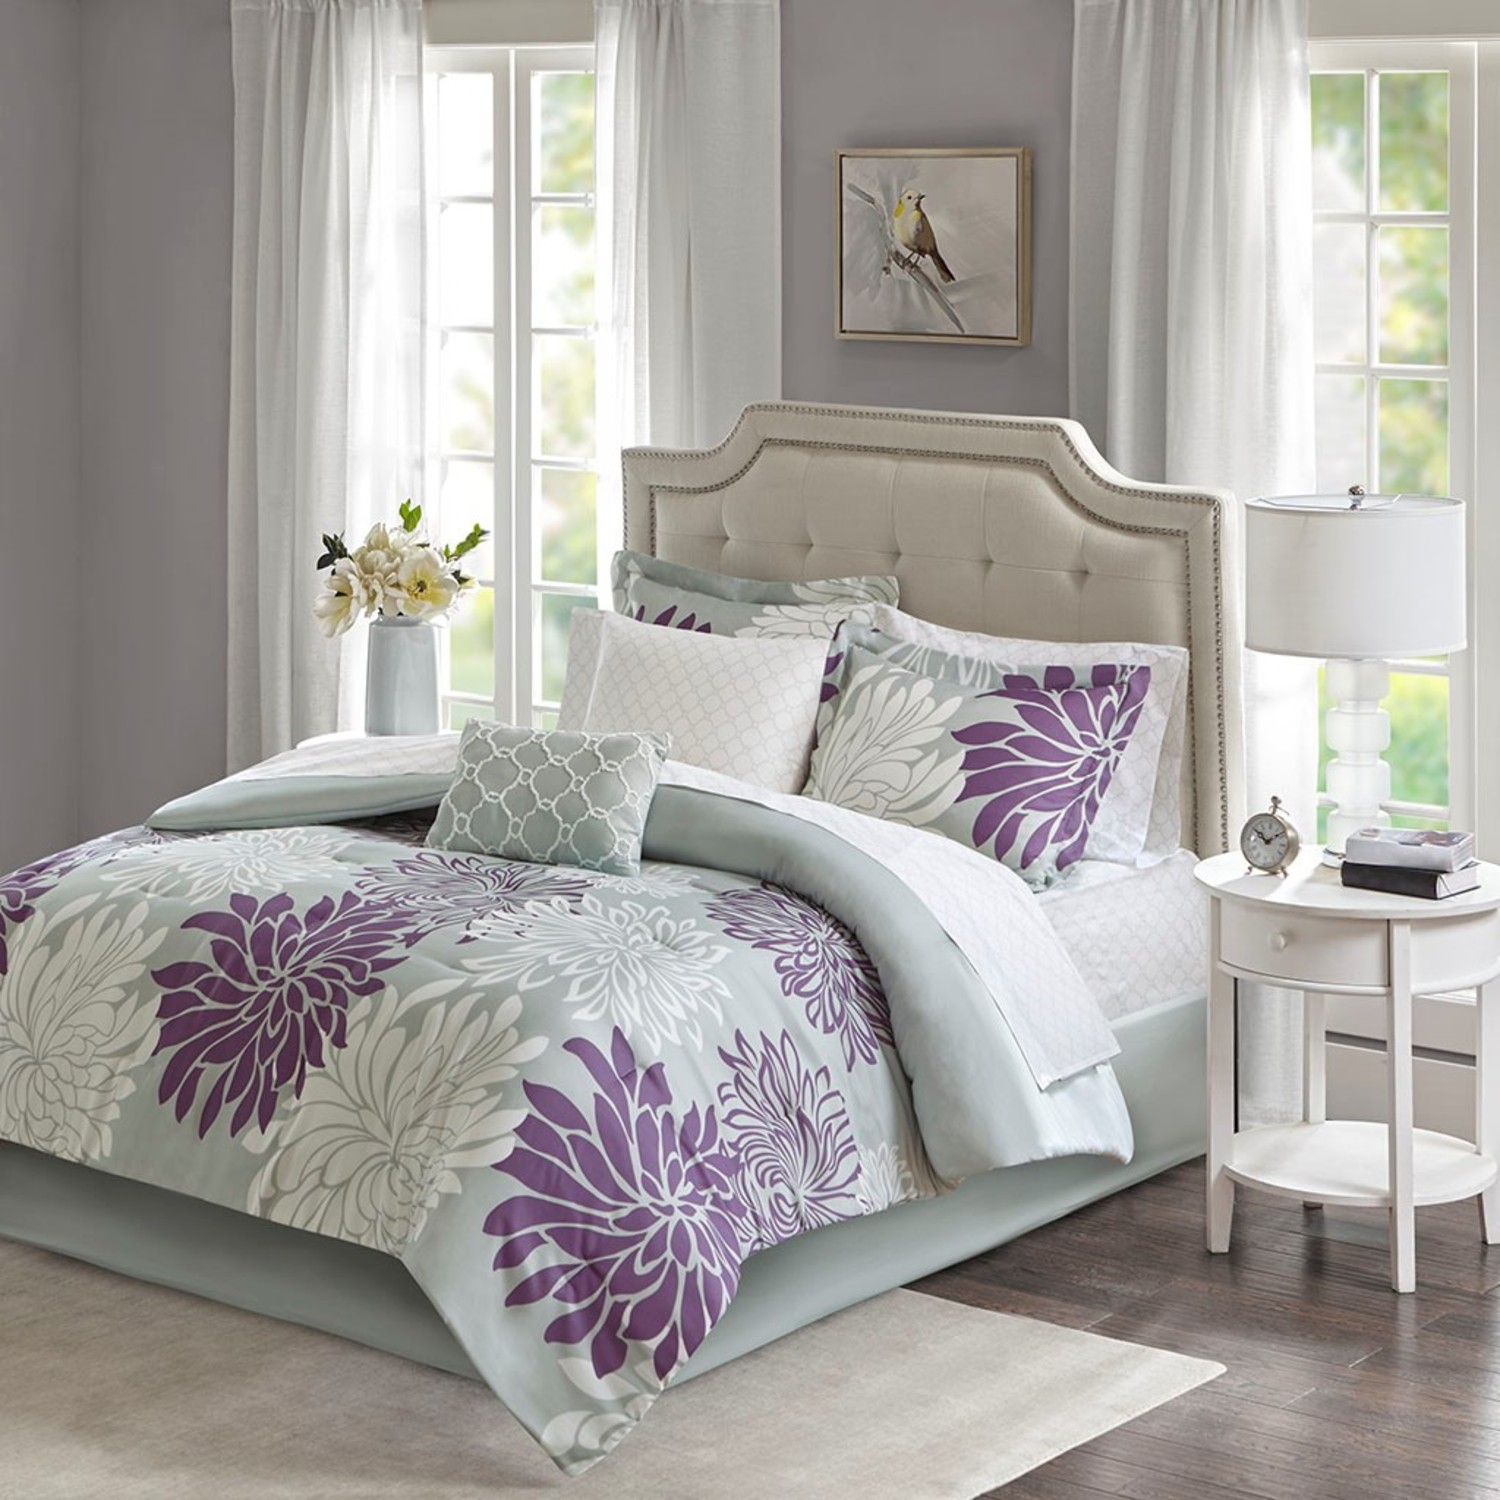 Maible Purple Comforter and Sheet Set by Madison Park